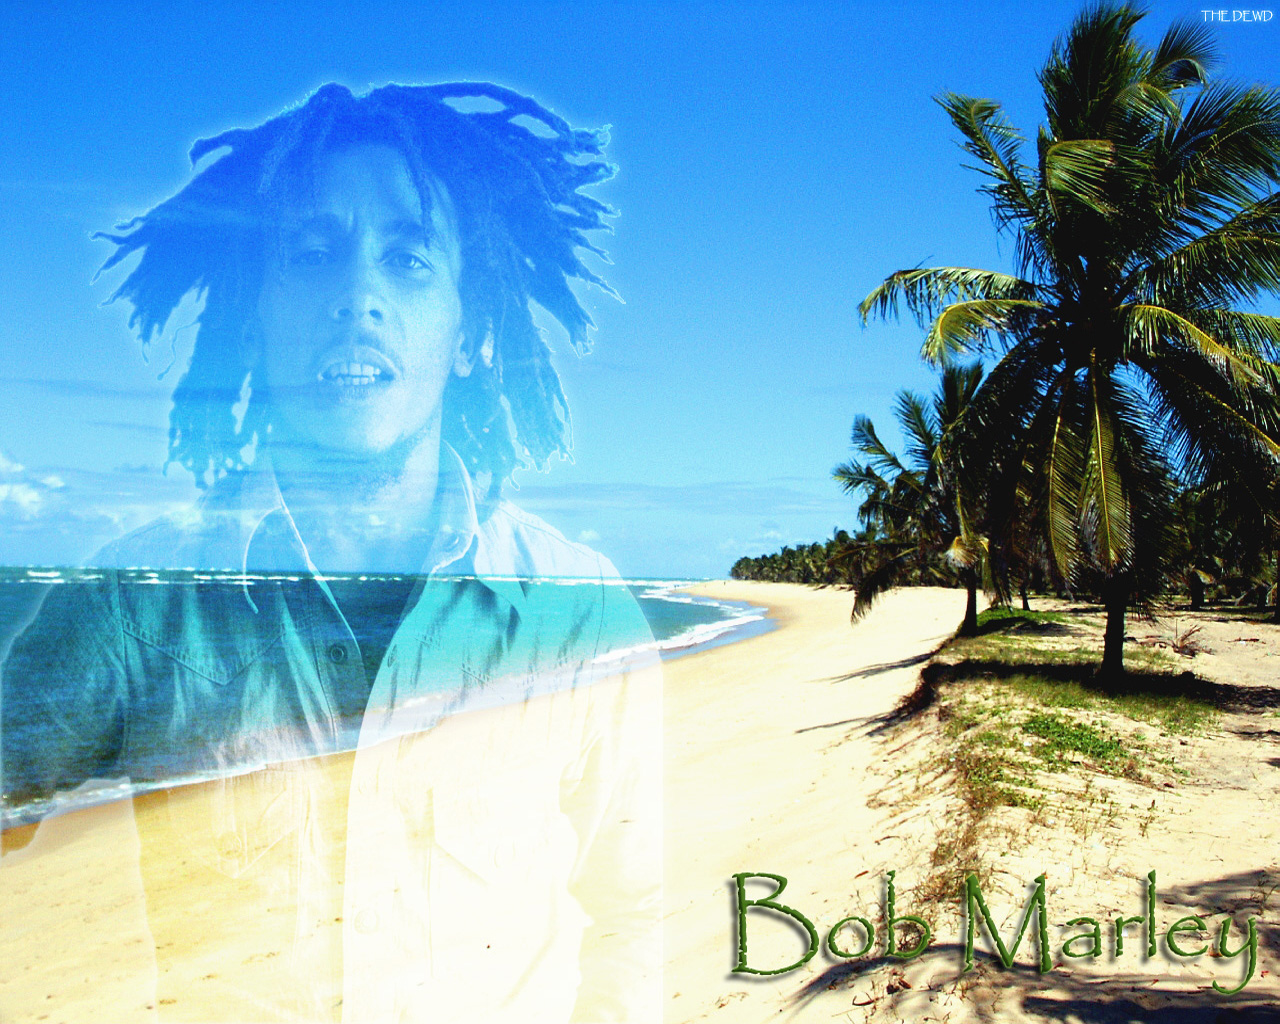 Celebrity wallpapers / Bob marley wallpapers / Bob marley wallpapers (15590)